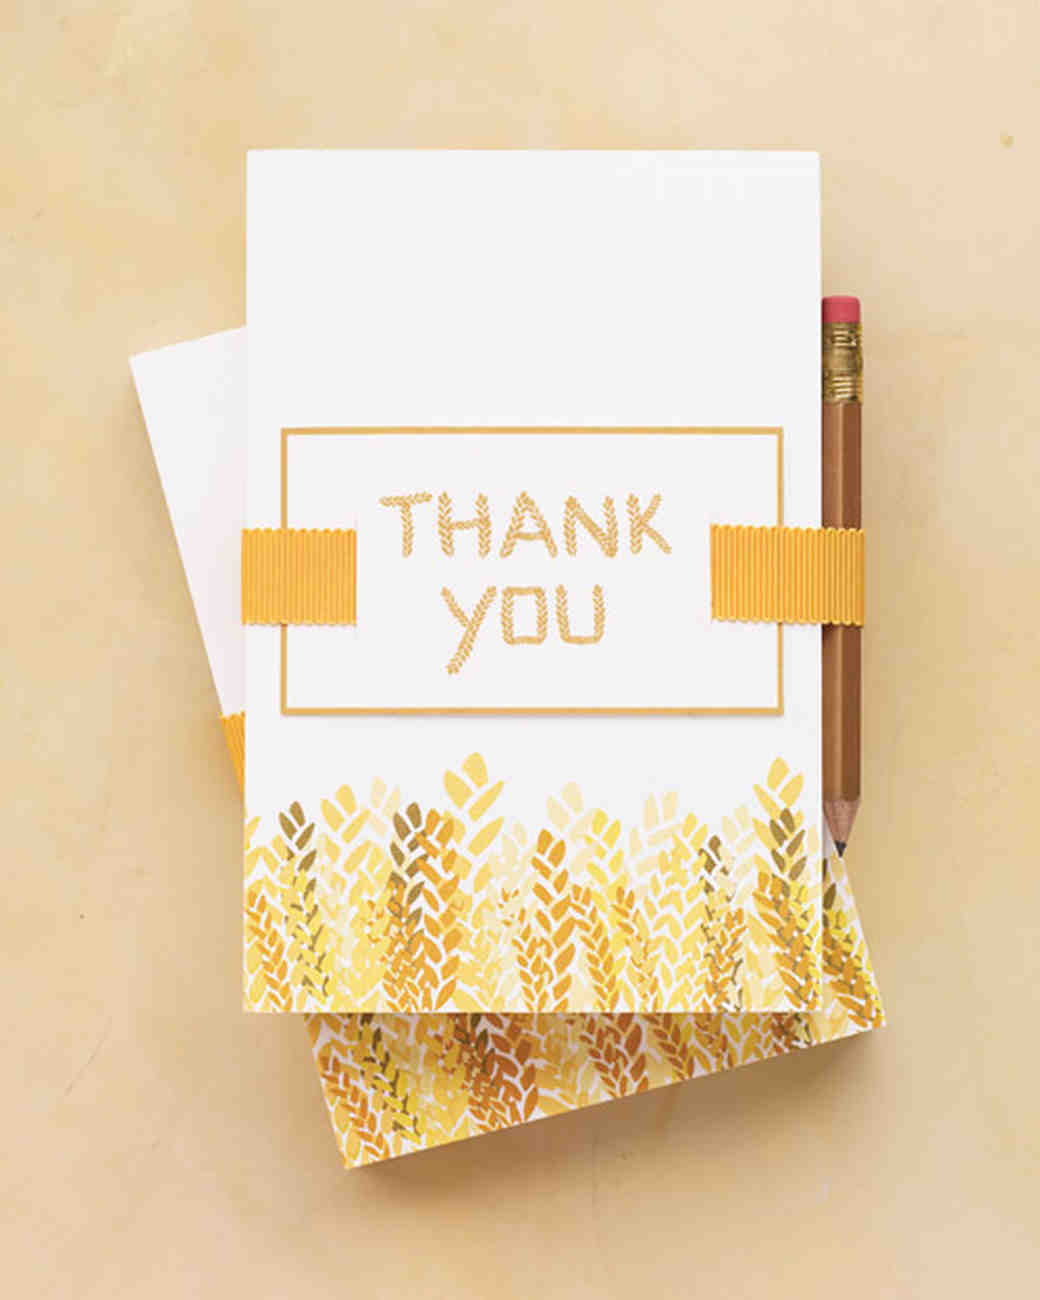 9 tips for writing thank you notes for wedding gifts martha 9 tips for writing thank you notes for wedding gifts martha stewart weddings junglespirit Gallery